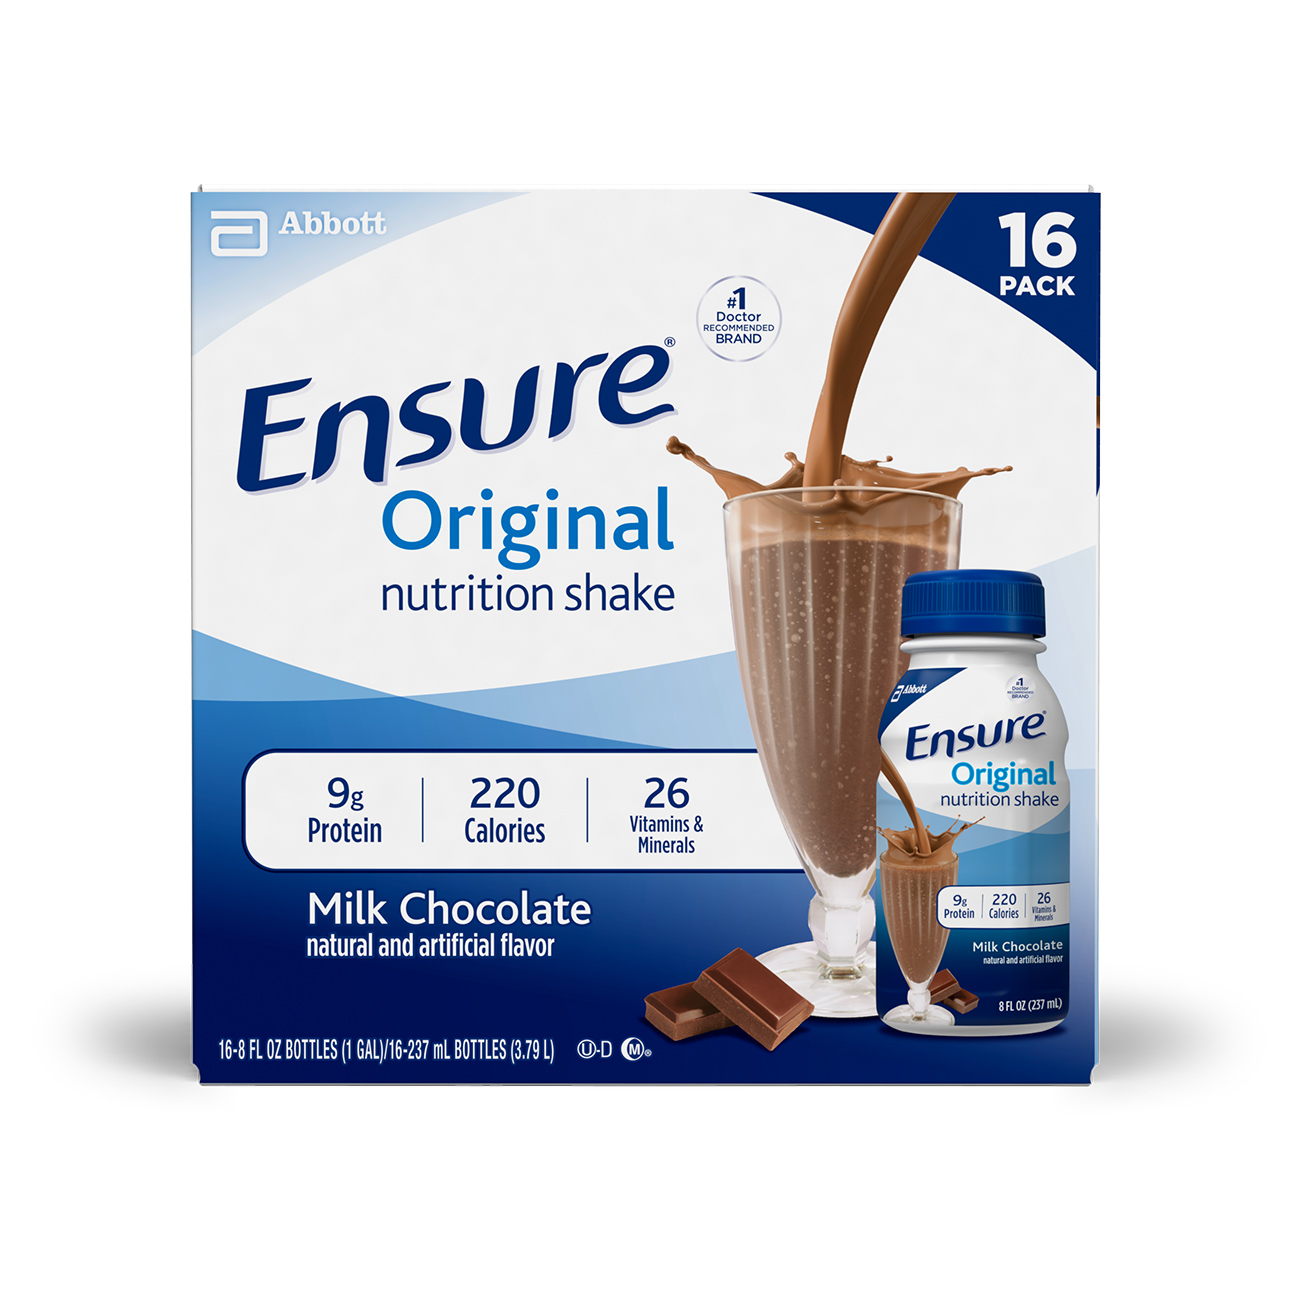 Ensure Original Nutrition Shake with 9 grams of protein, Meal Replacement Shakes, Milk Chocolate, 8 fl oz, 16 Count